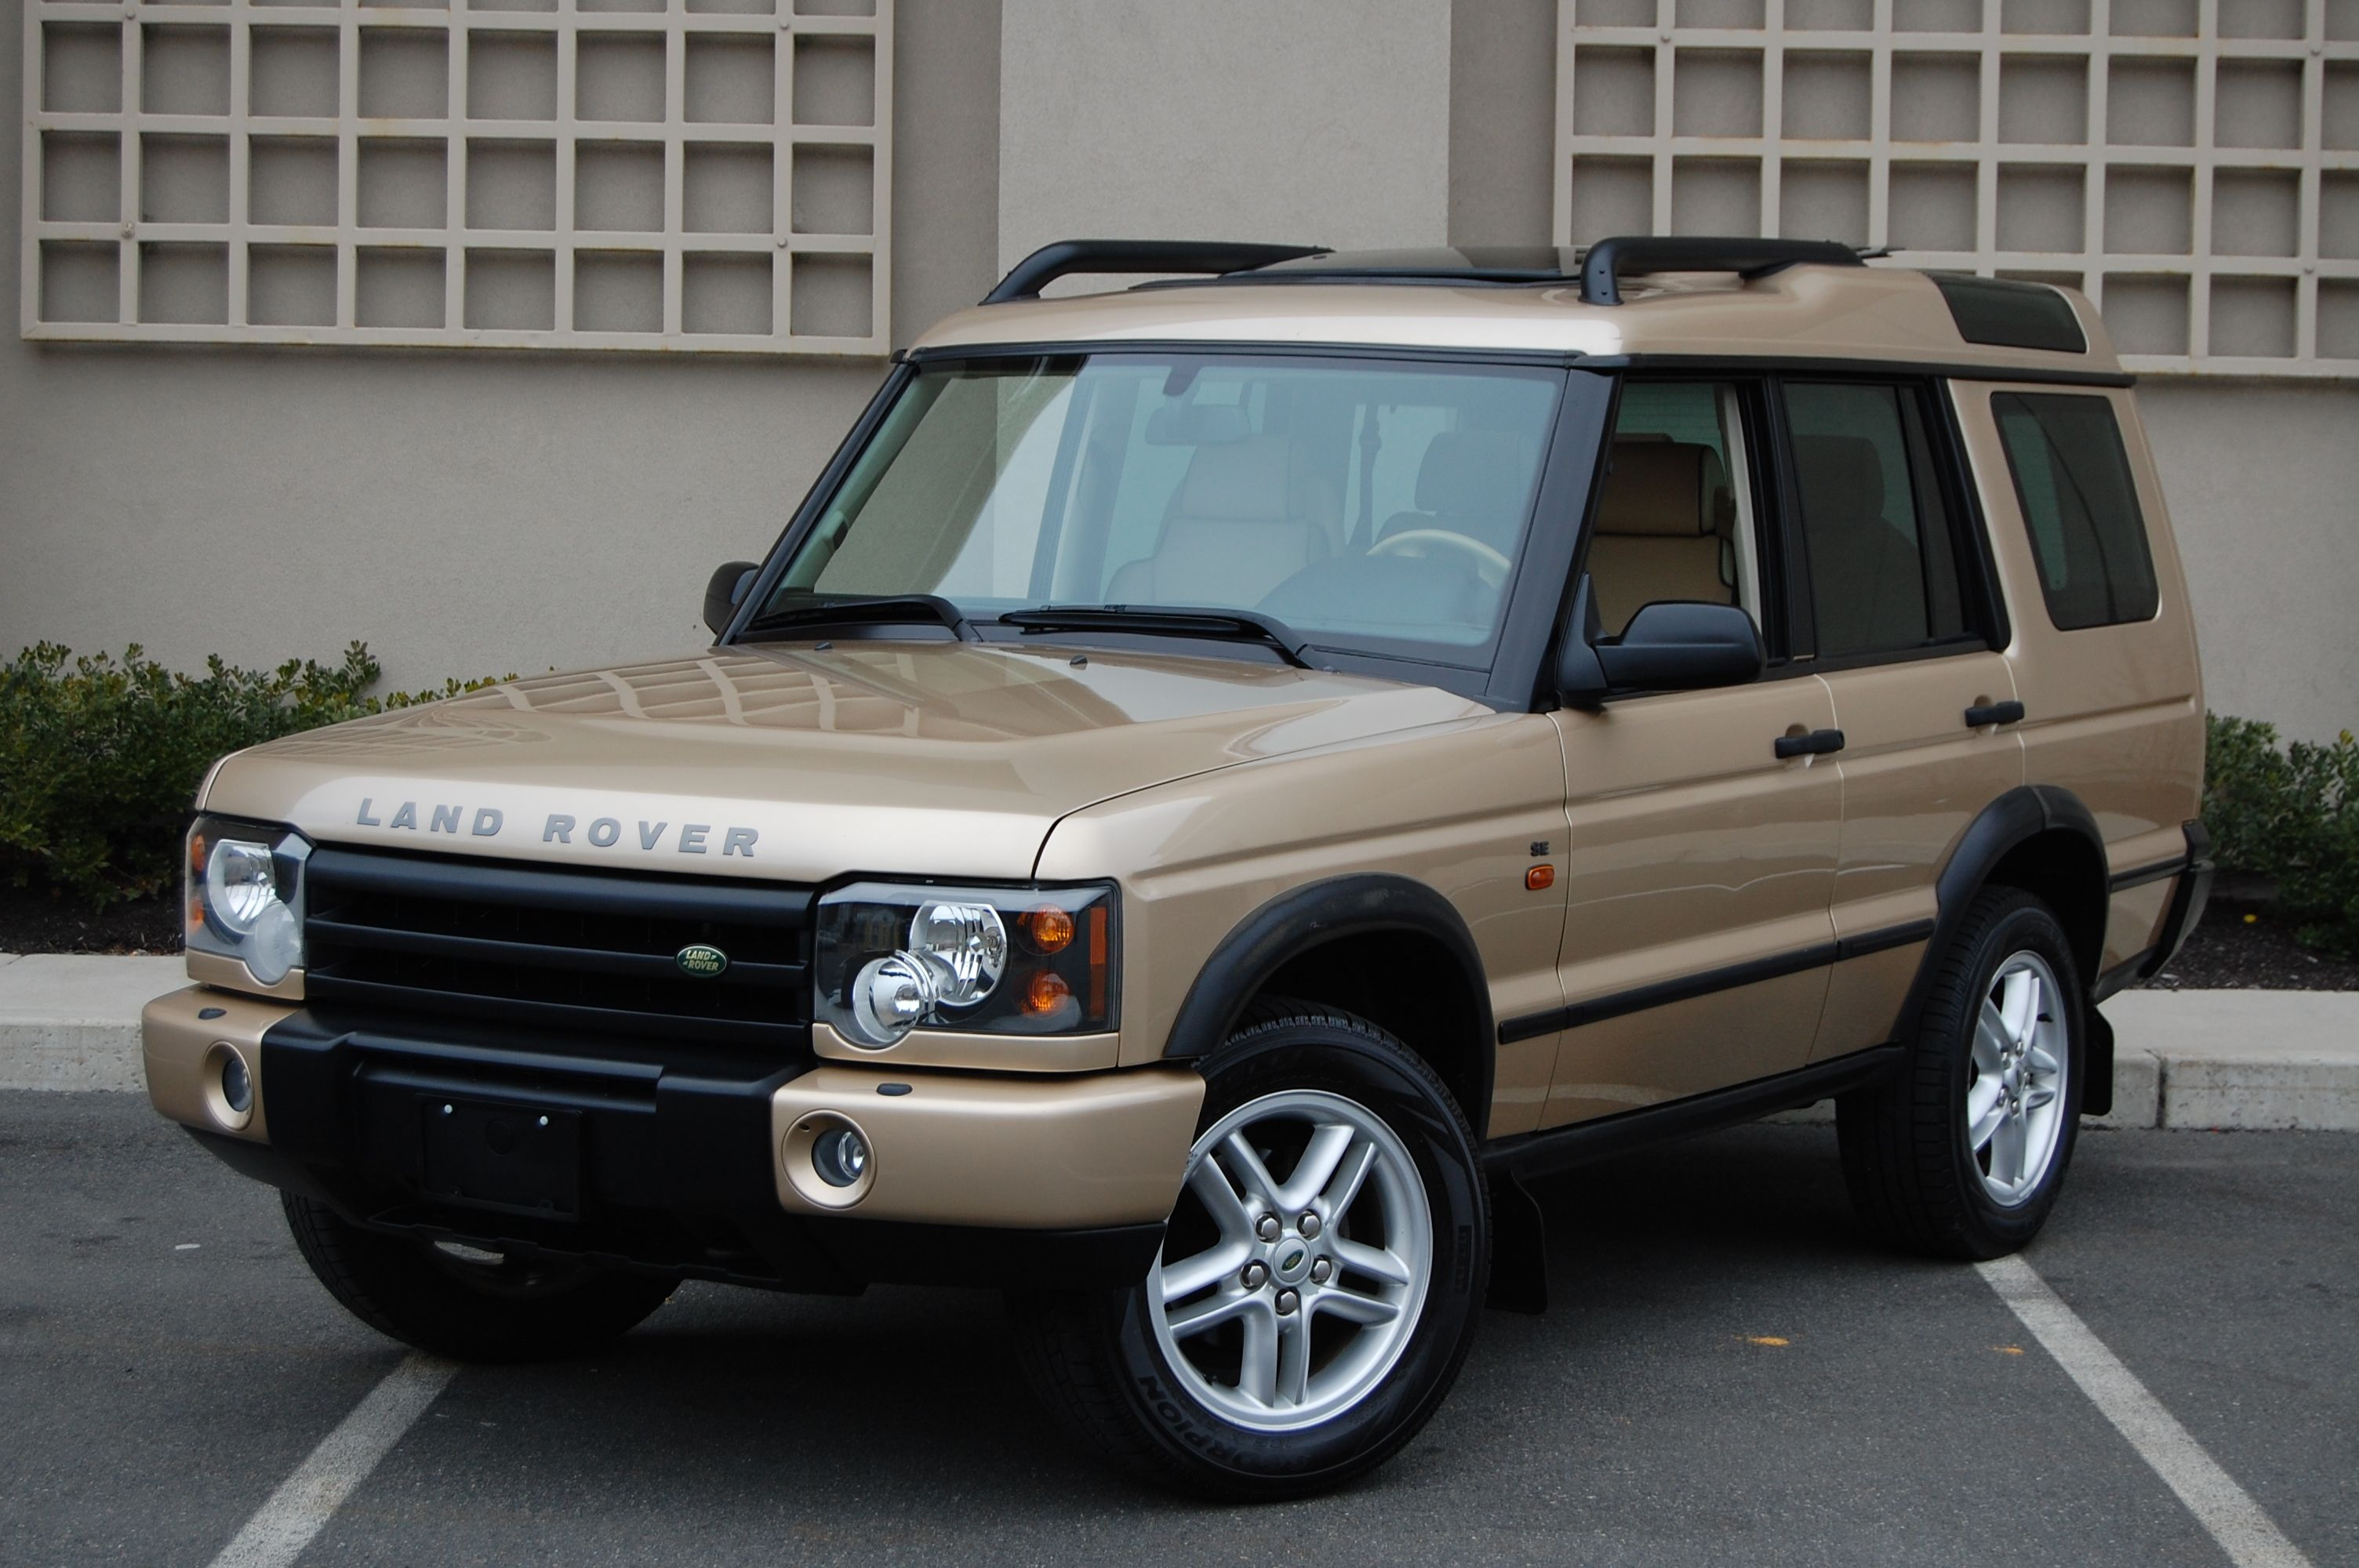 parts cars pin images hi green se land speed pinterest discovery pic and rovers rover bing landrover